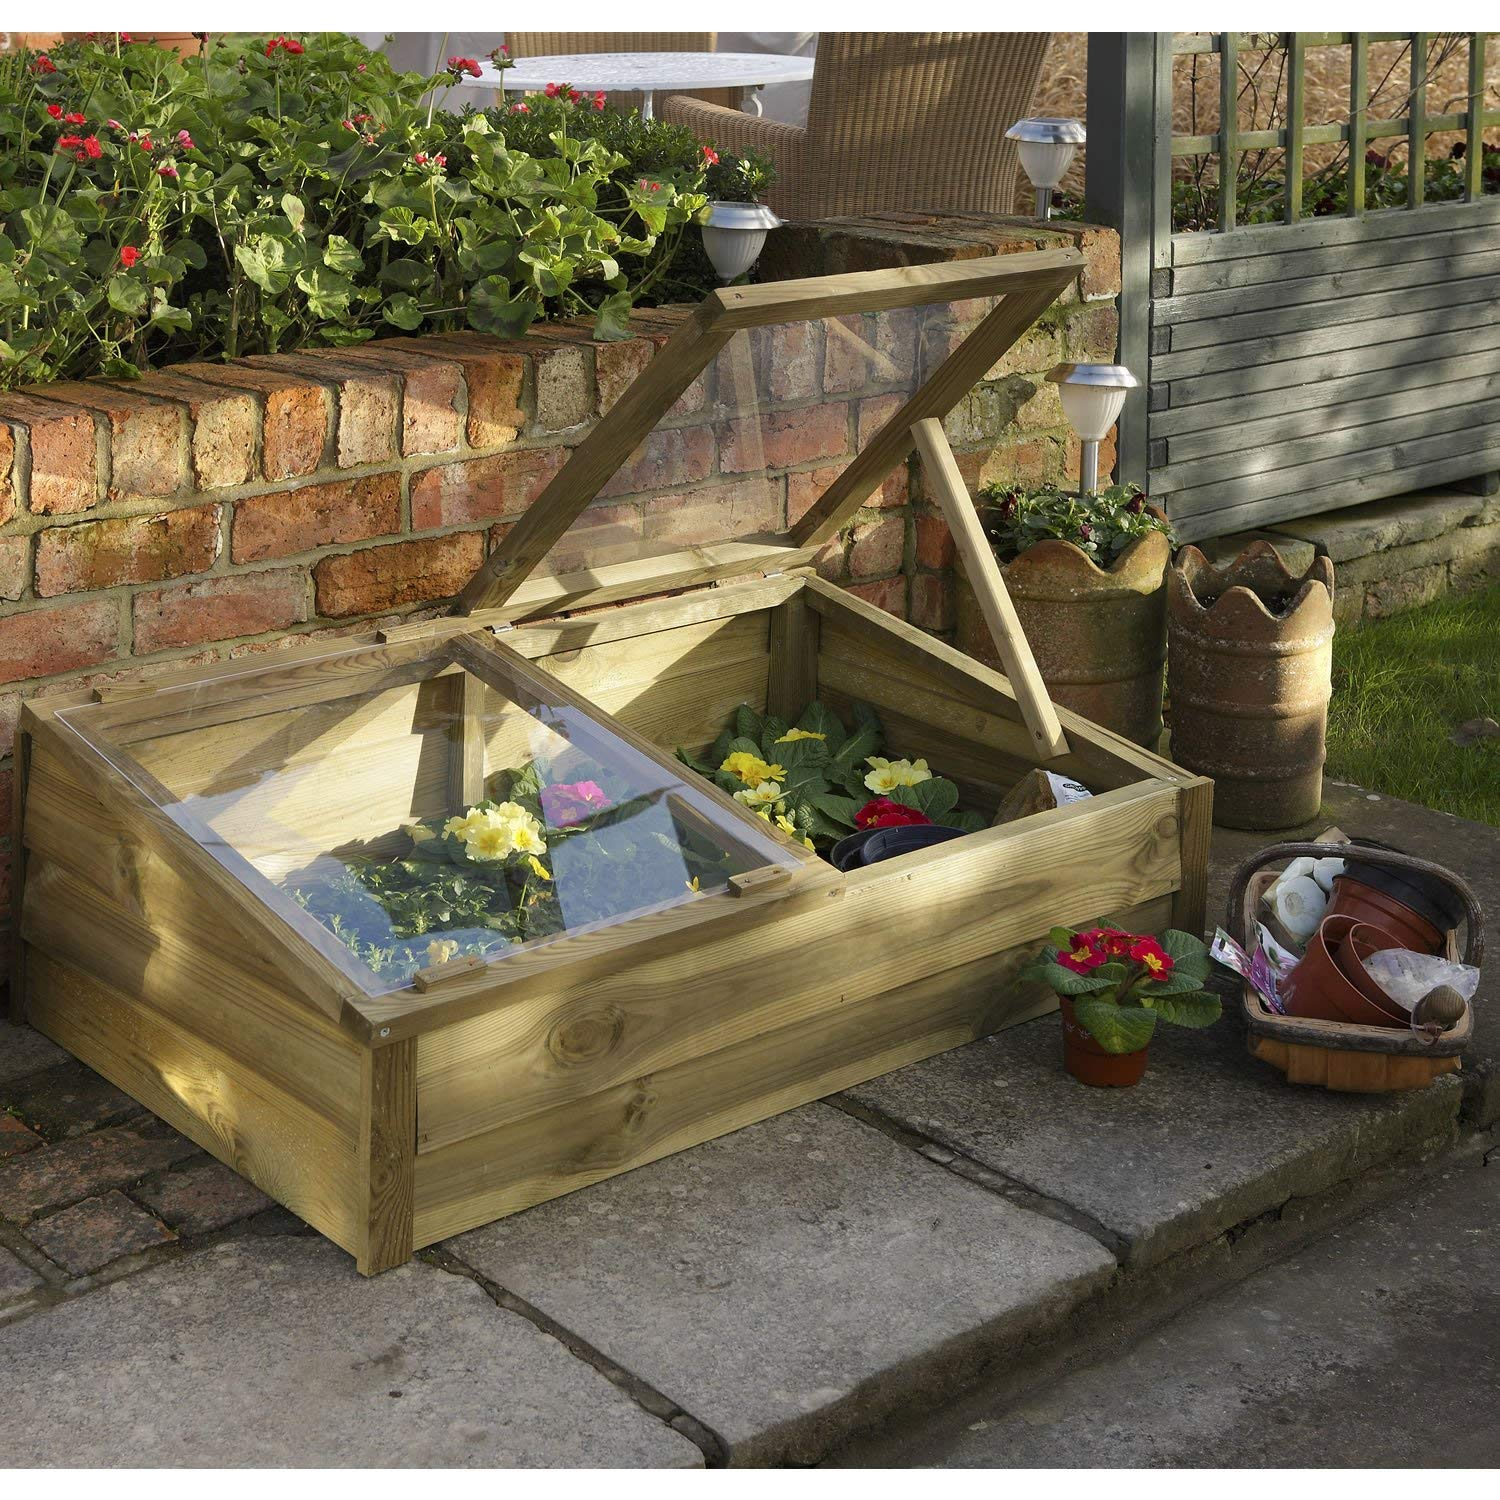 Forest Large Overlap Cold Frame: Amazon.co.uk: Garden & Outdoors